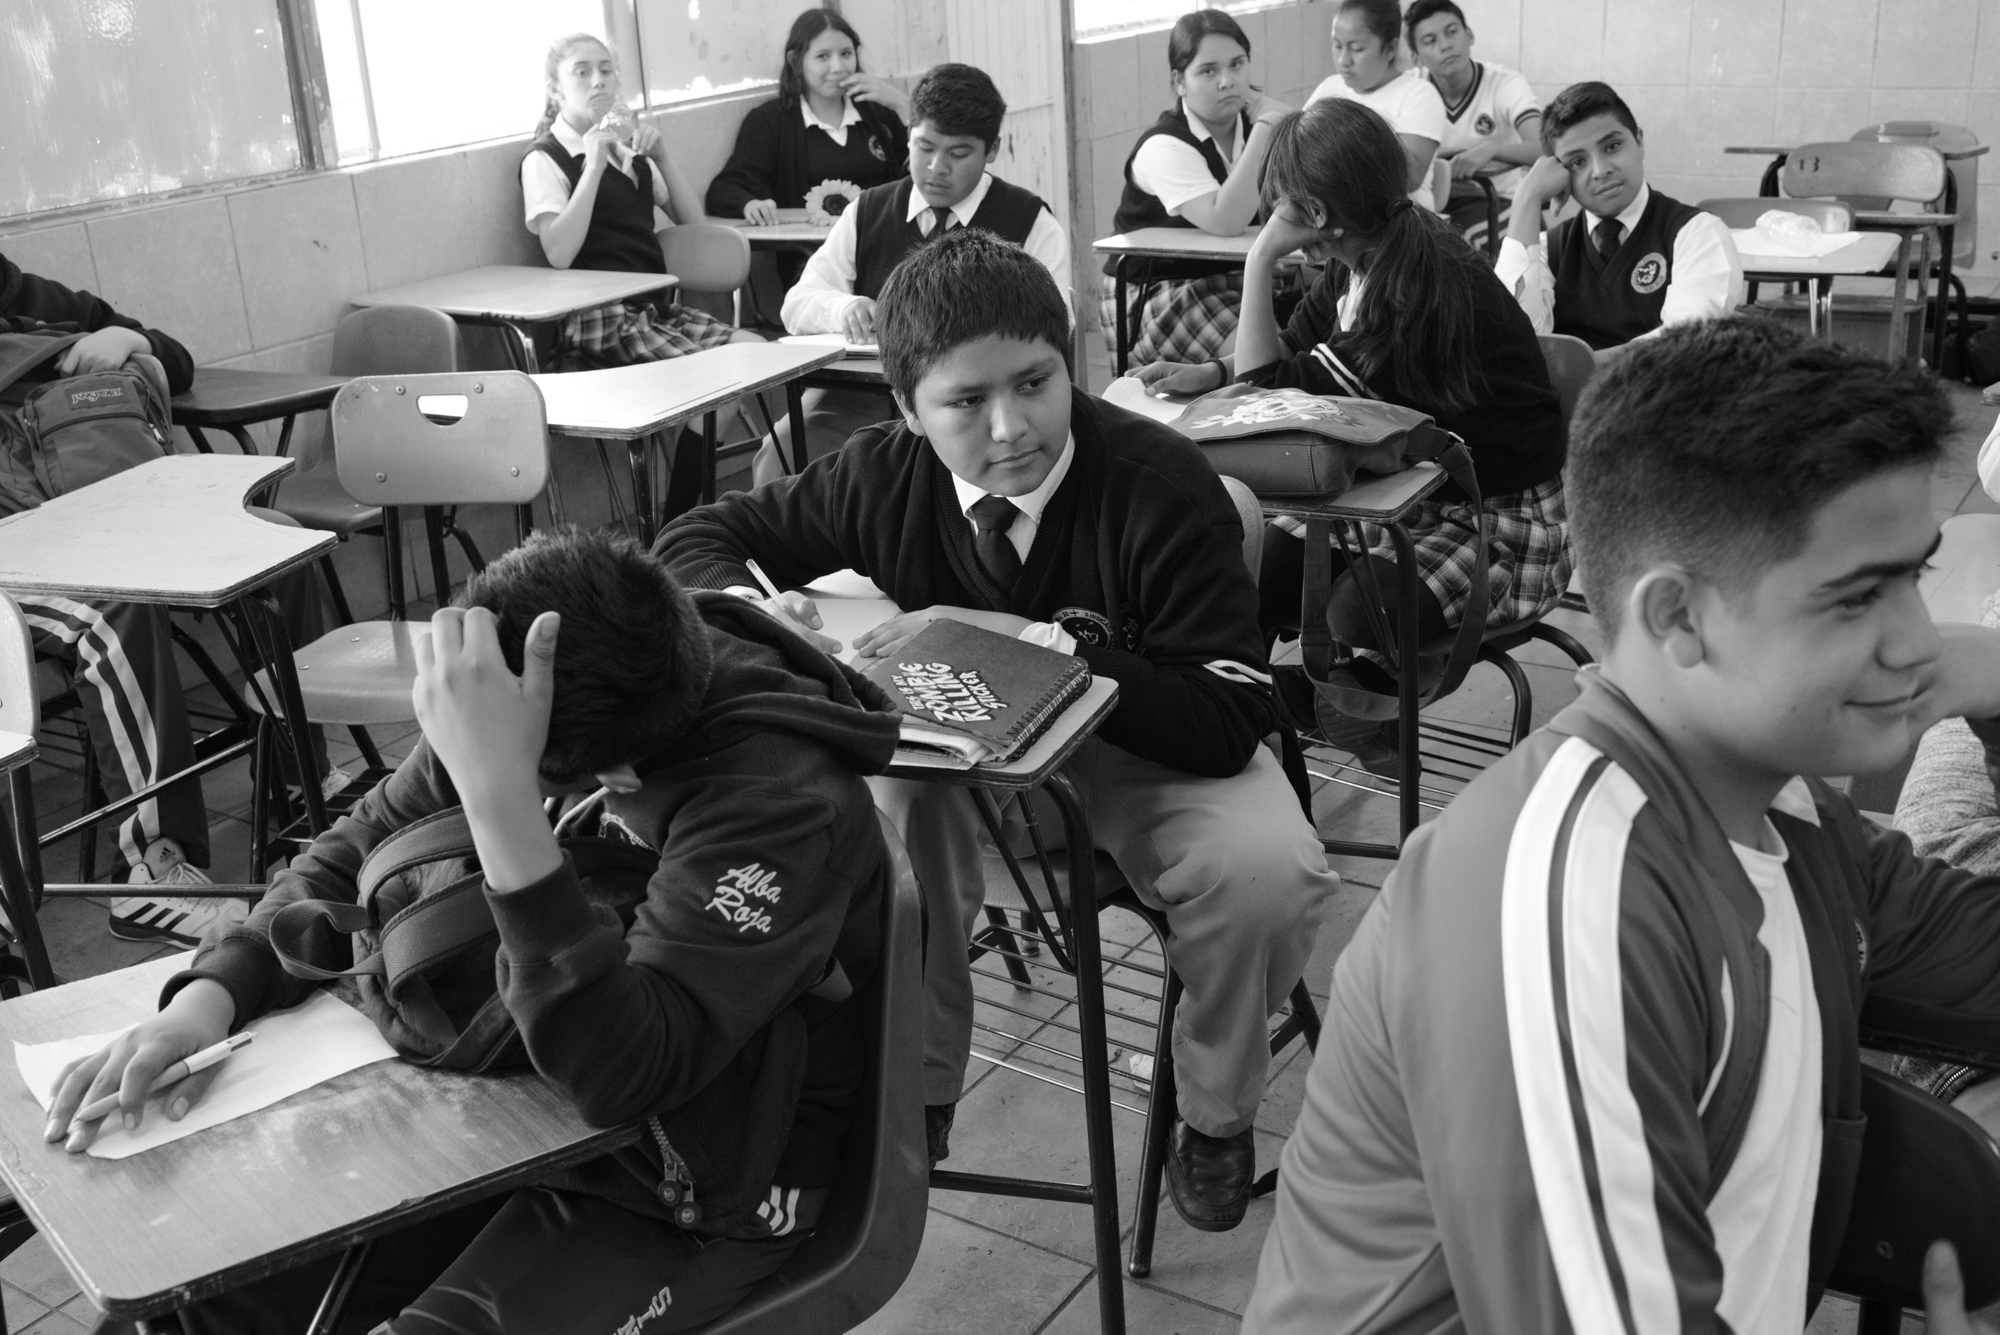 Alexander, 13, in Spanish class at Escuela Secundaria Sindicato Alba Roja.